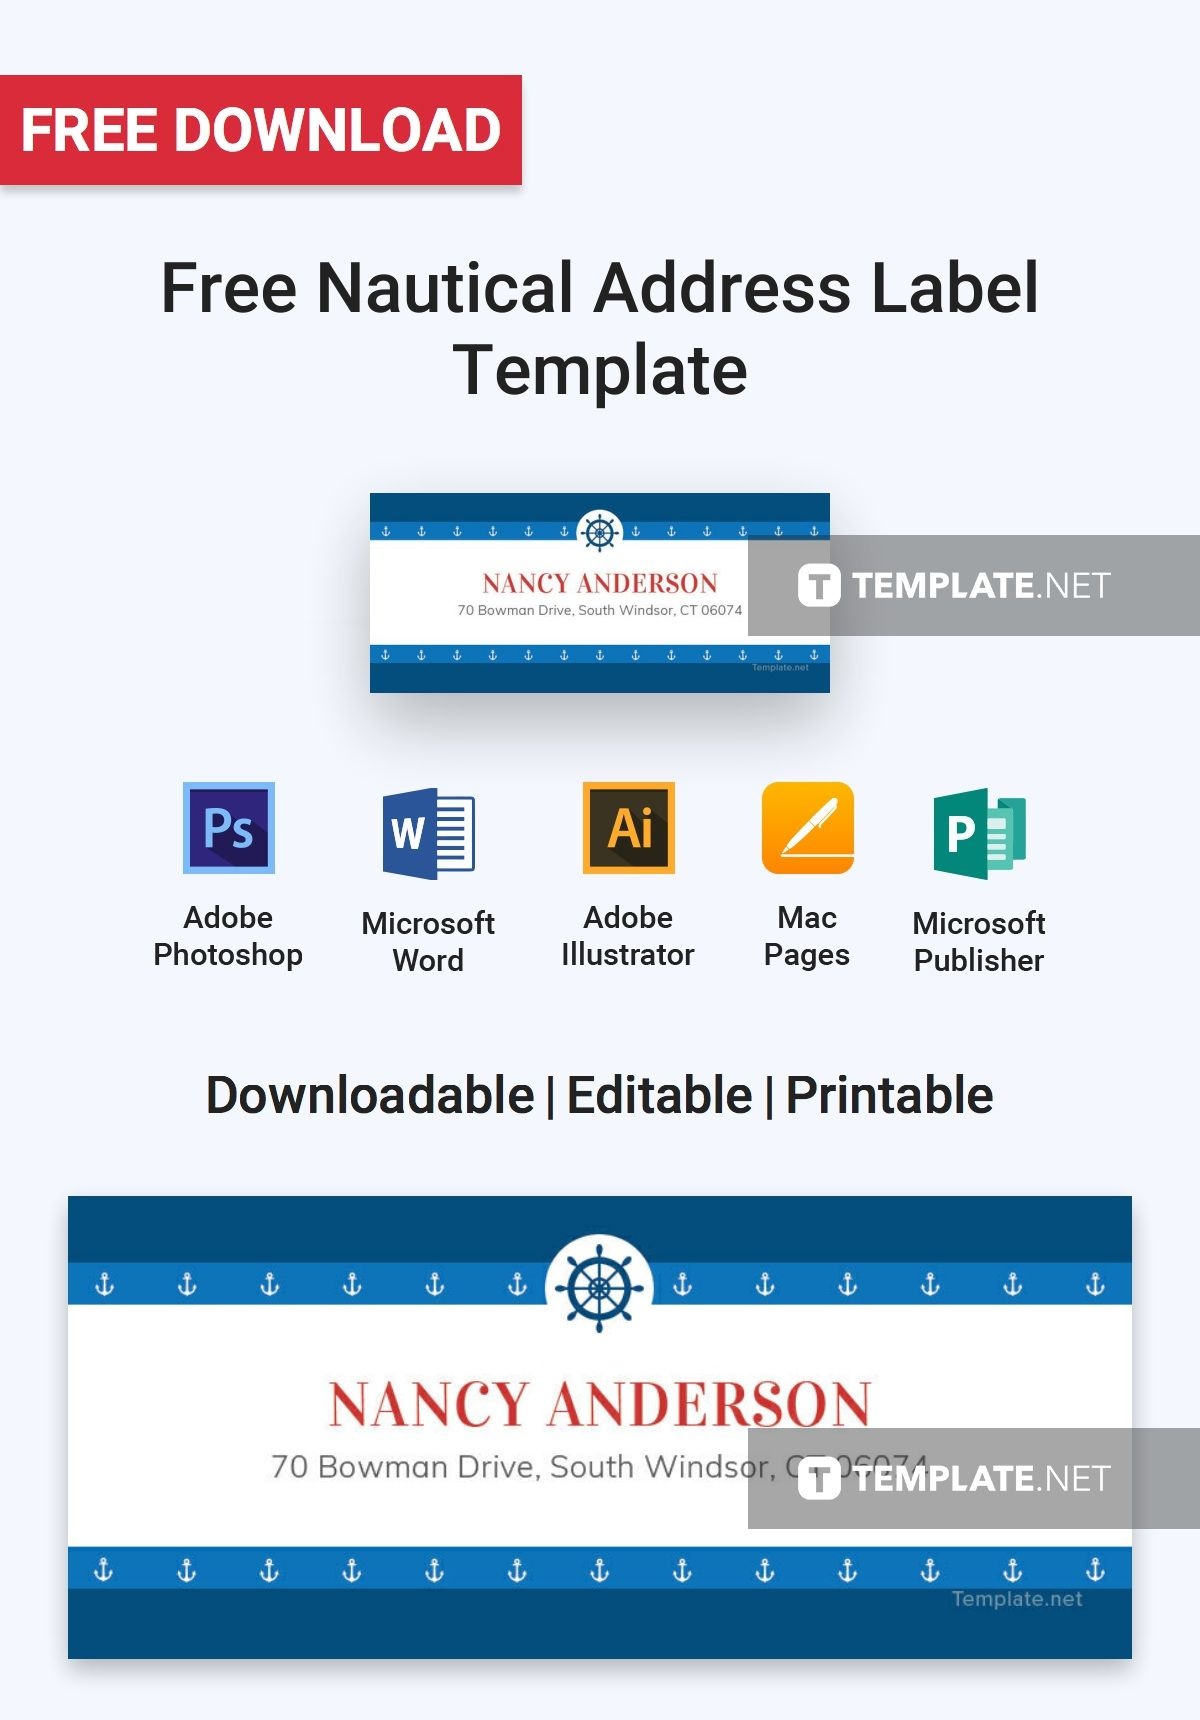 Free Nautical Address Label Template Word Doc Psd Apple Mac Pages Illustrator Publisher Address Label Template Label Templates Address Labels Mailing label template for mac